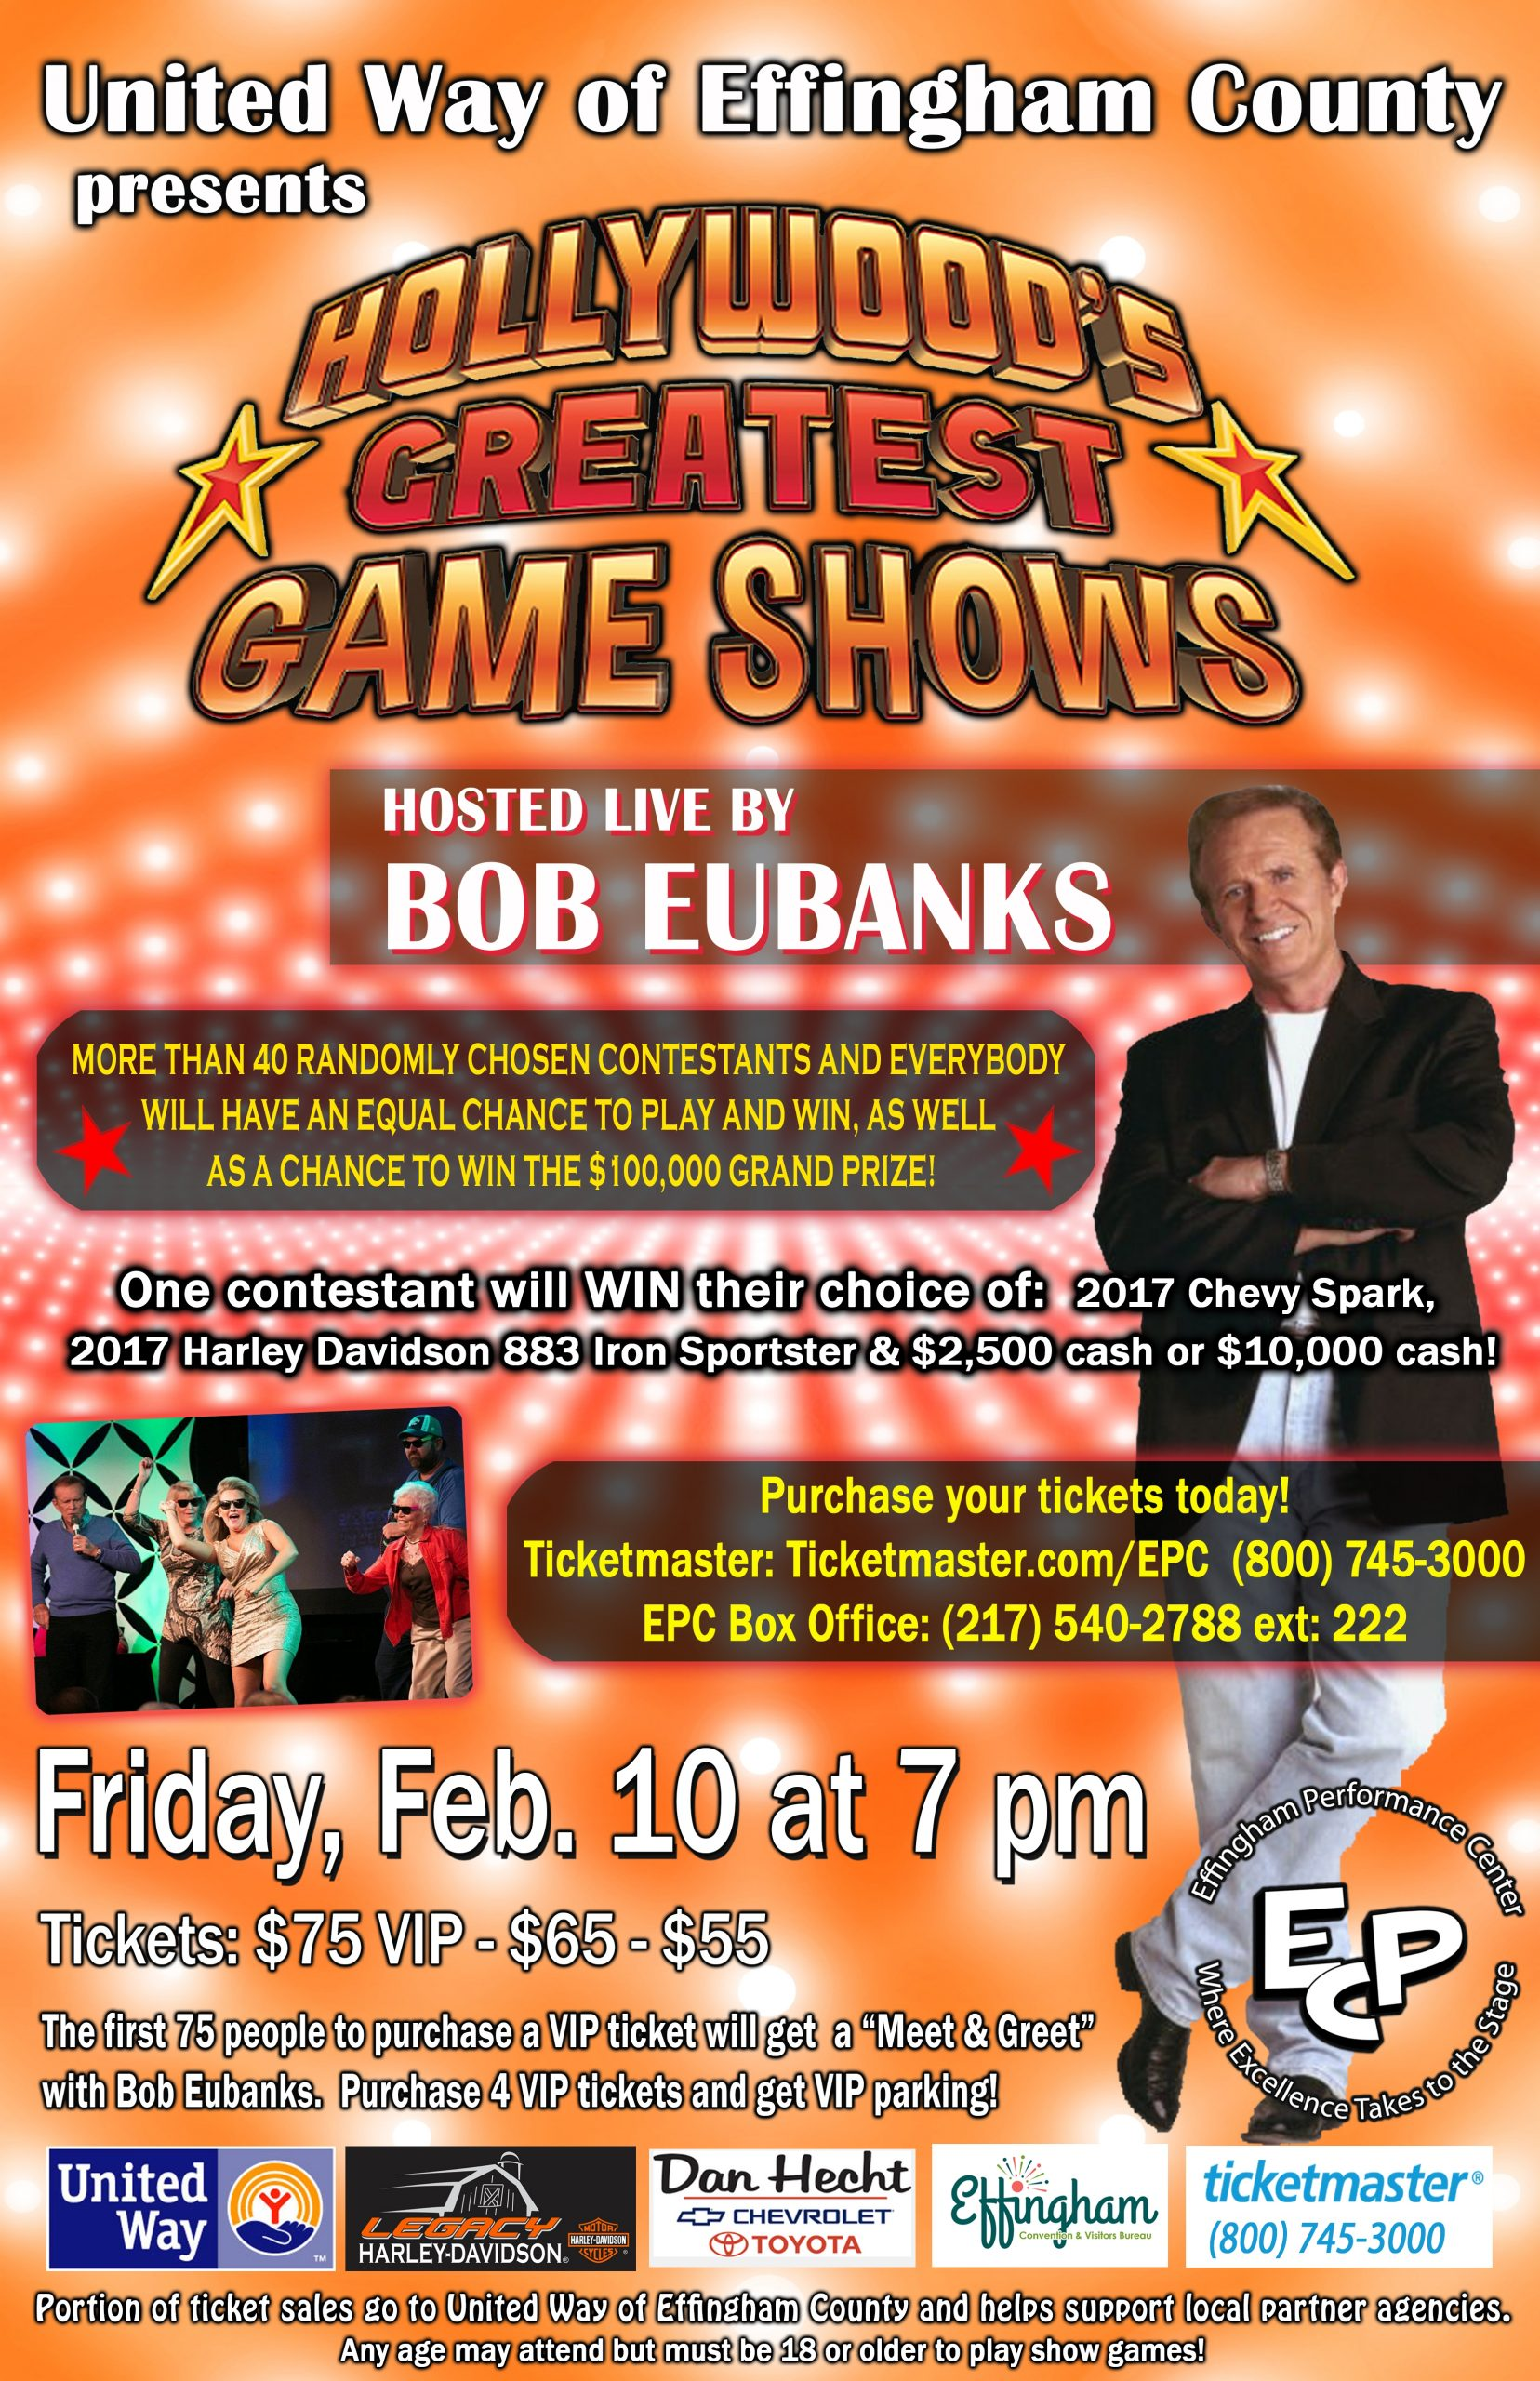 Hollywood's Greatest Game Shows Coming to Effingham